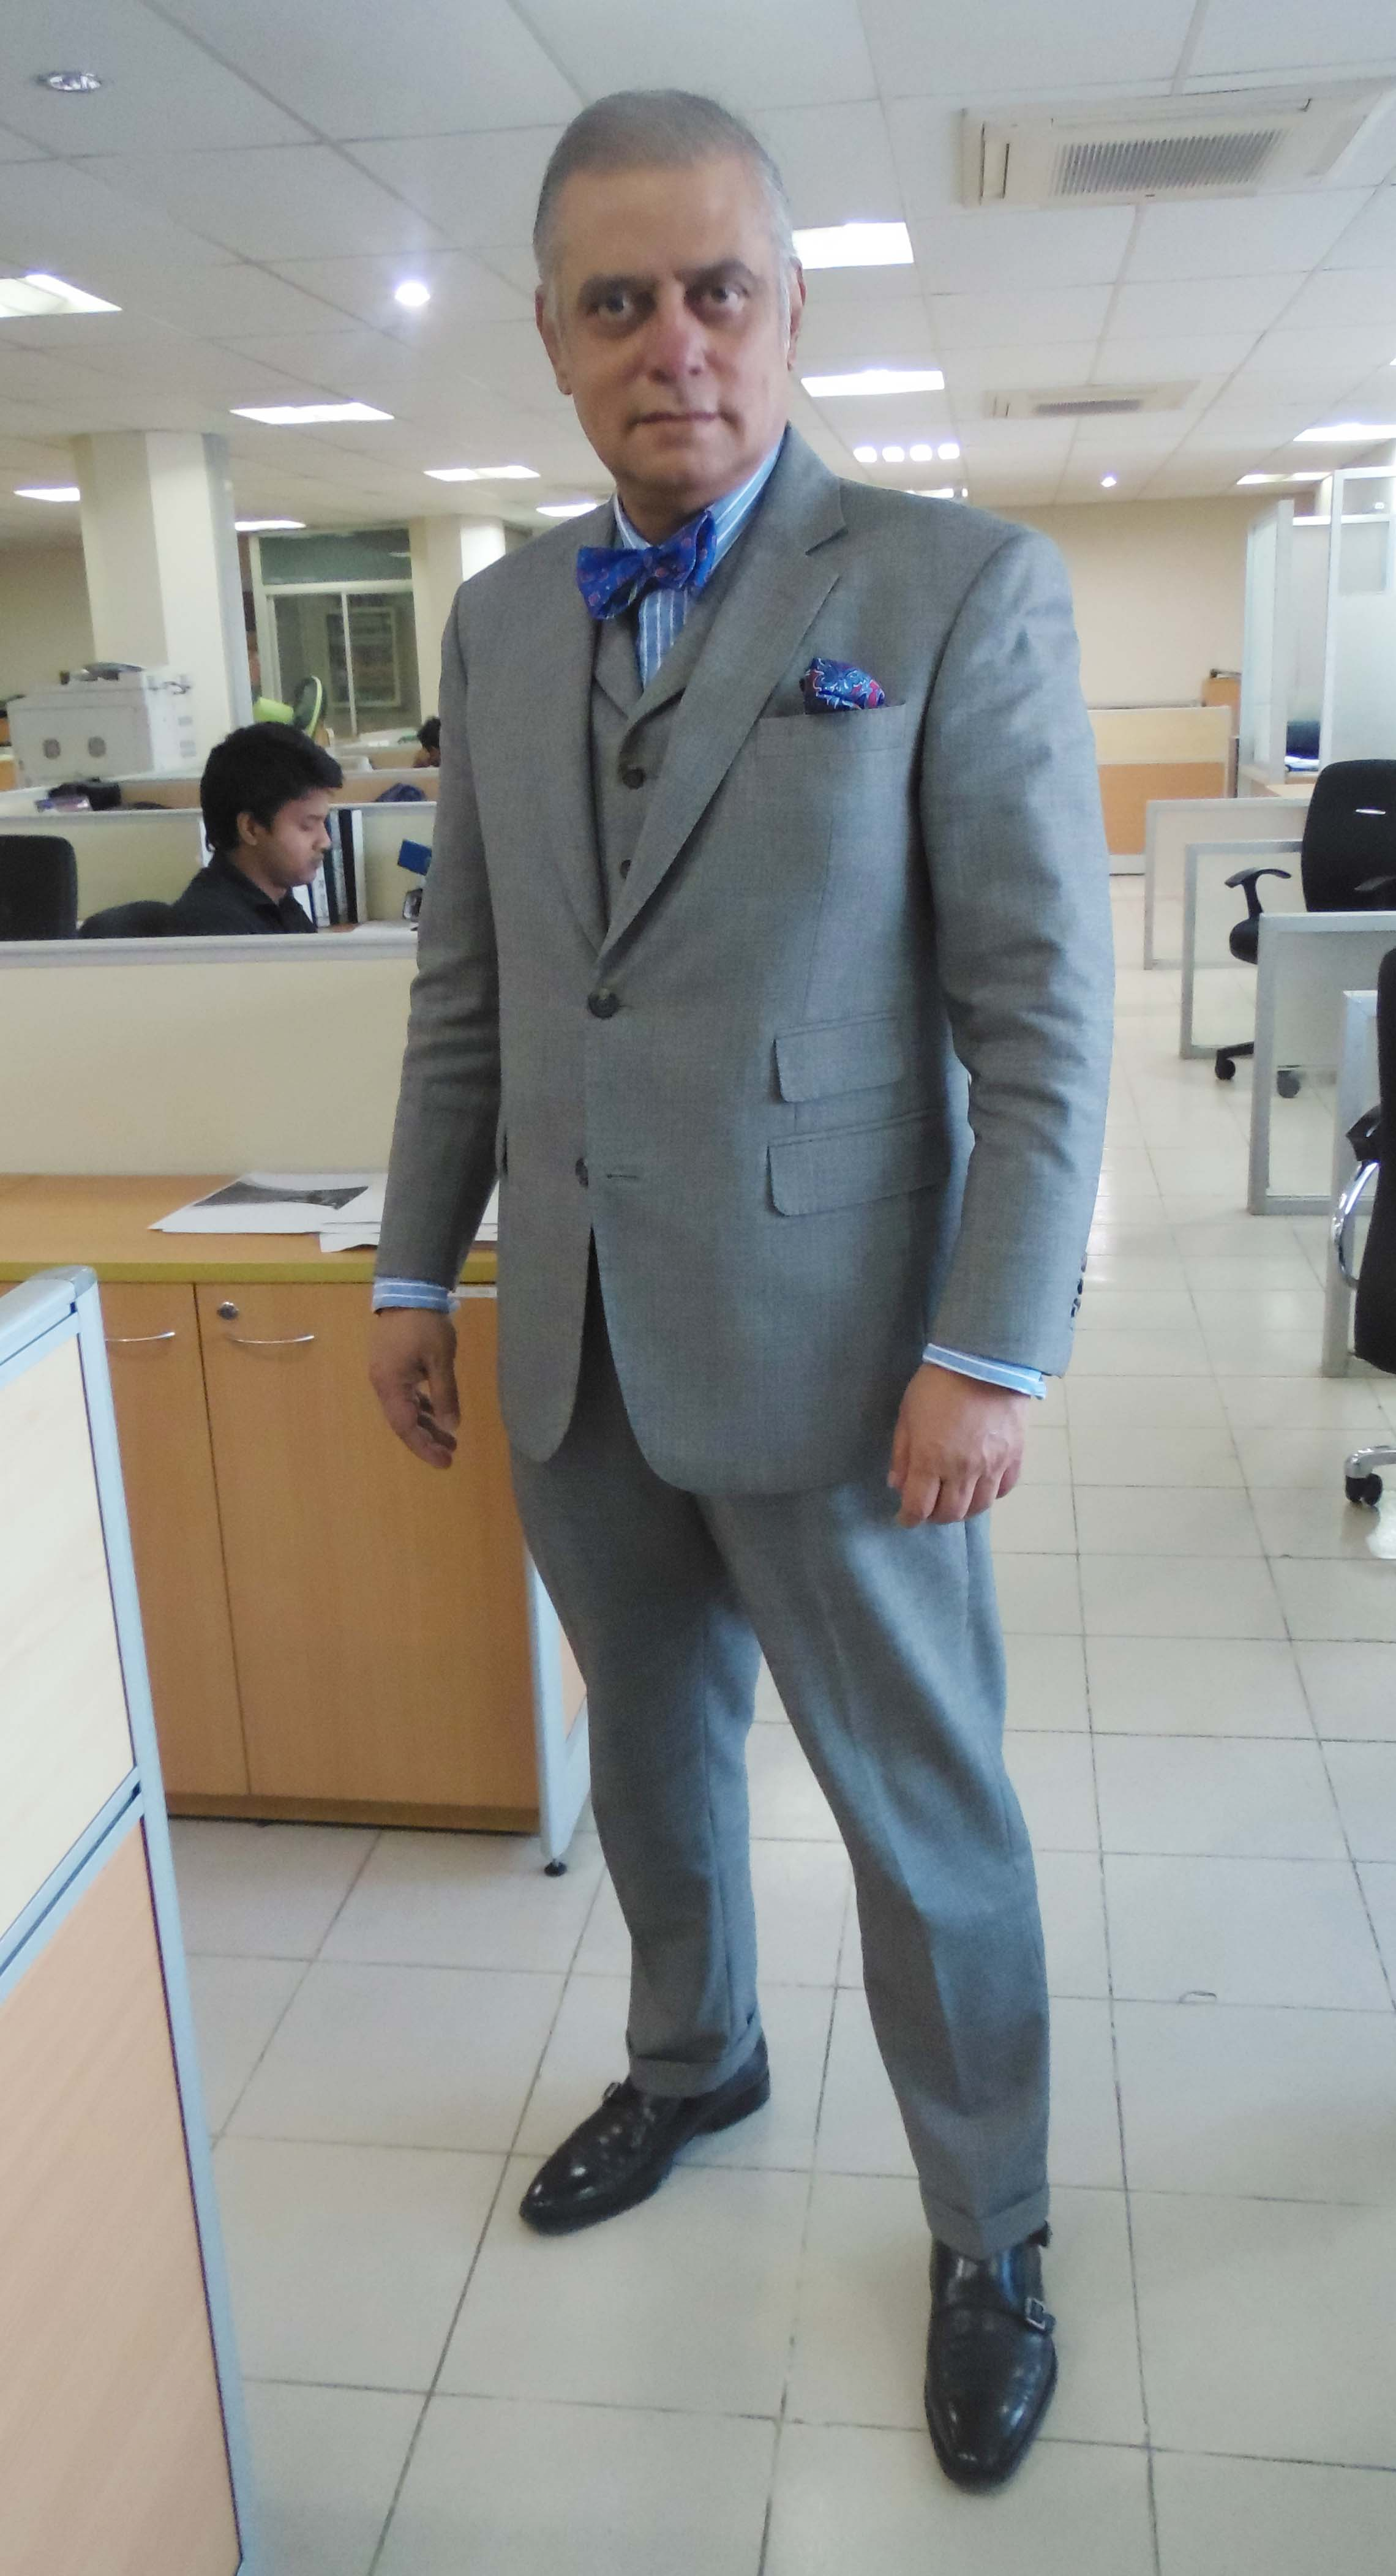 Charcoal suit brown shoes wedding